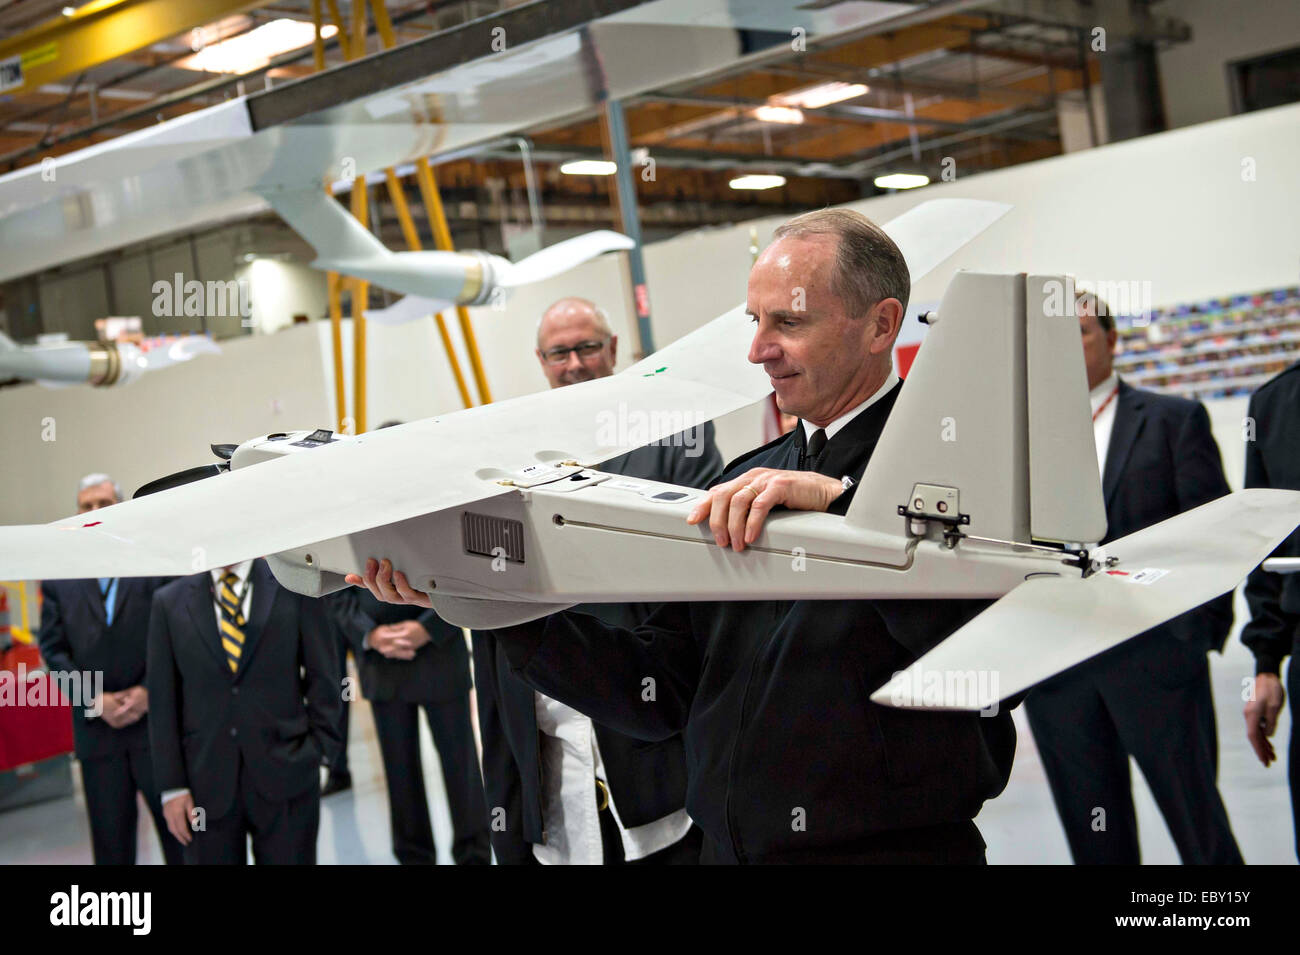 Chief of Naval Operations Adm. Jonathan Greenert holds an unmanned aircraft systems during a visit to AeroVironment - Stock Image